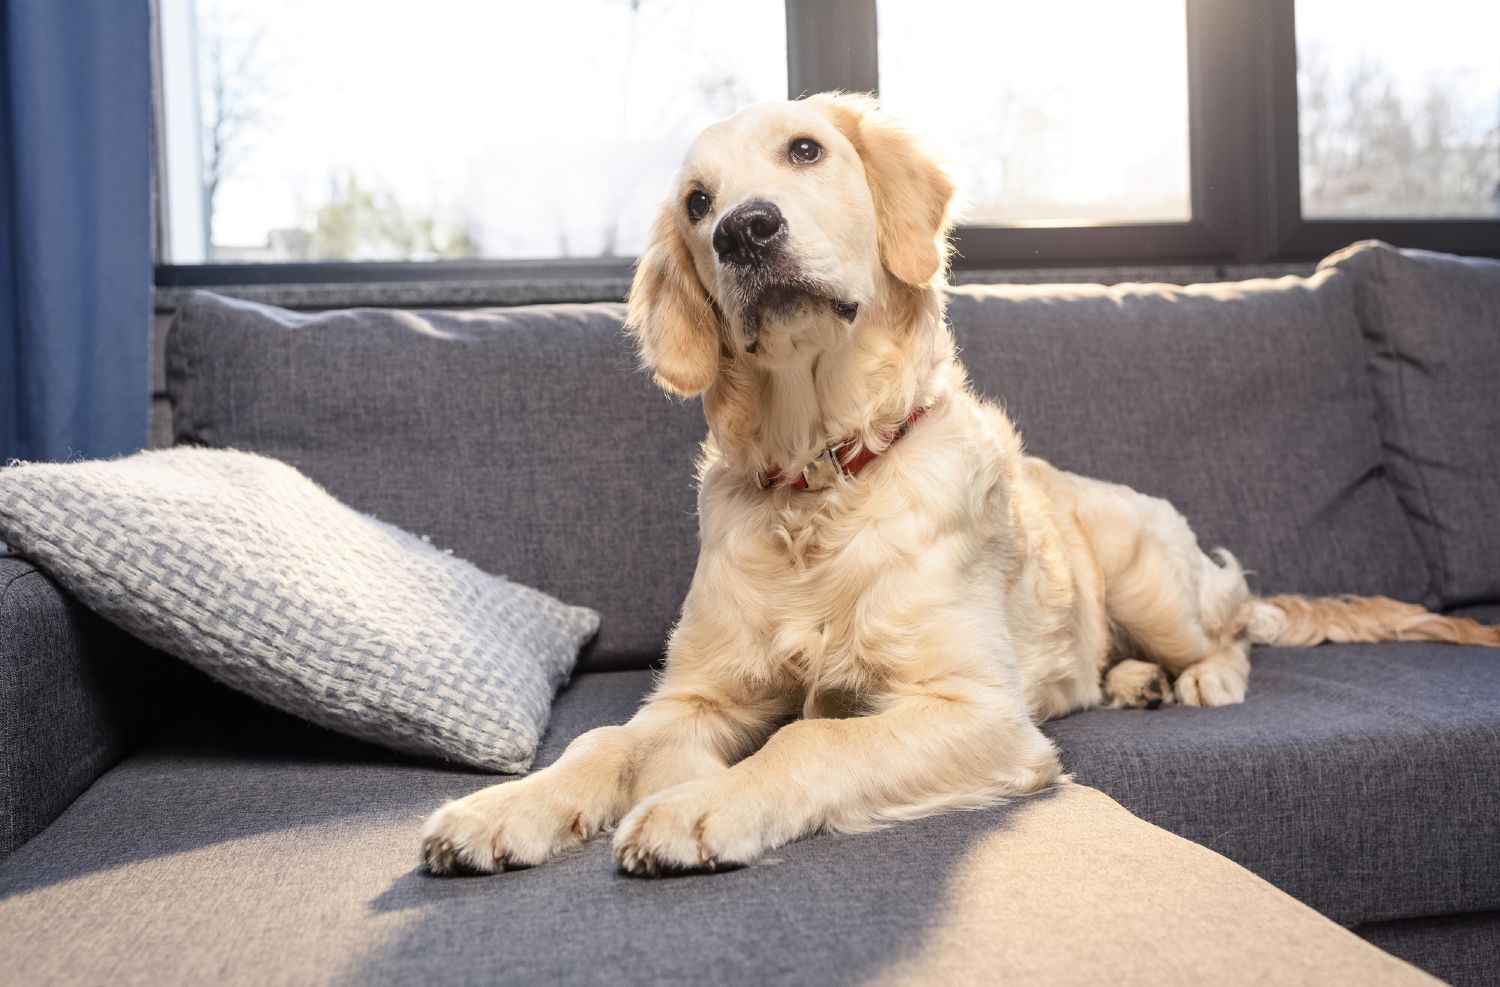 Cute dog sitting on gray couch